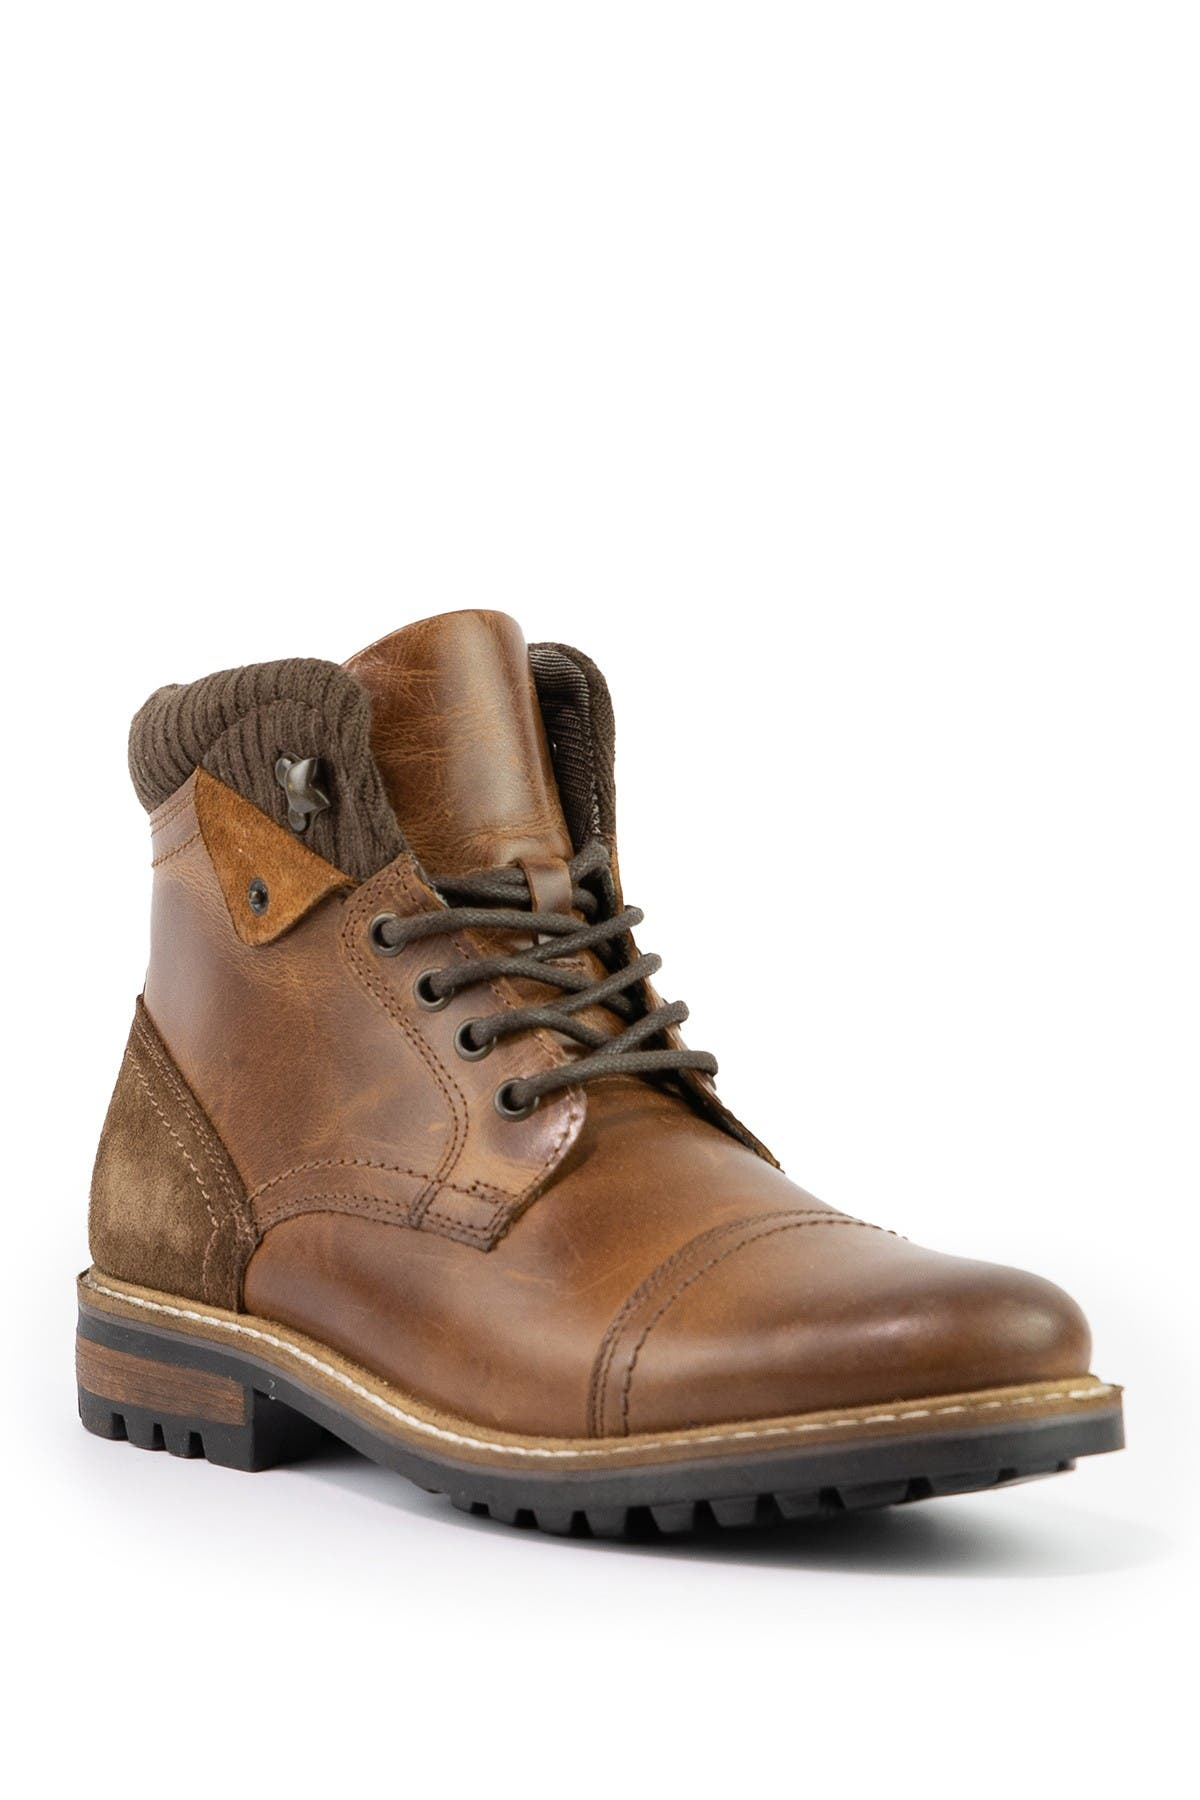 Image of Crevo Sore Lace-Up Boot